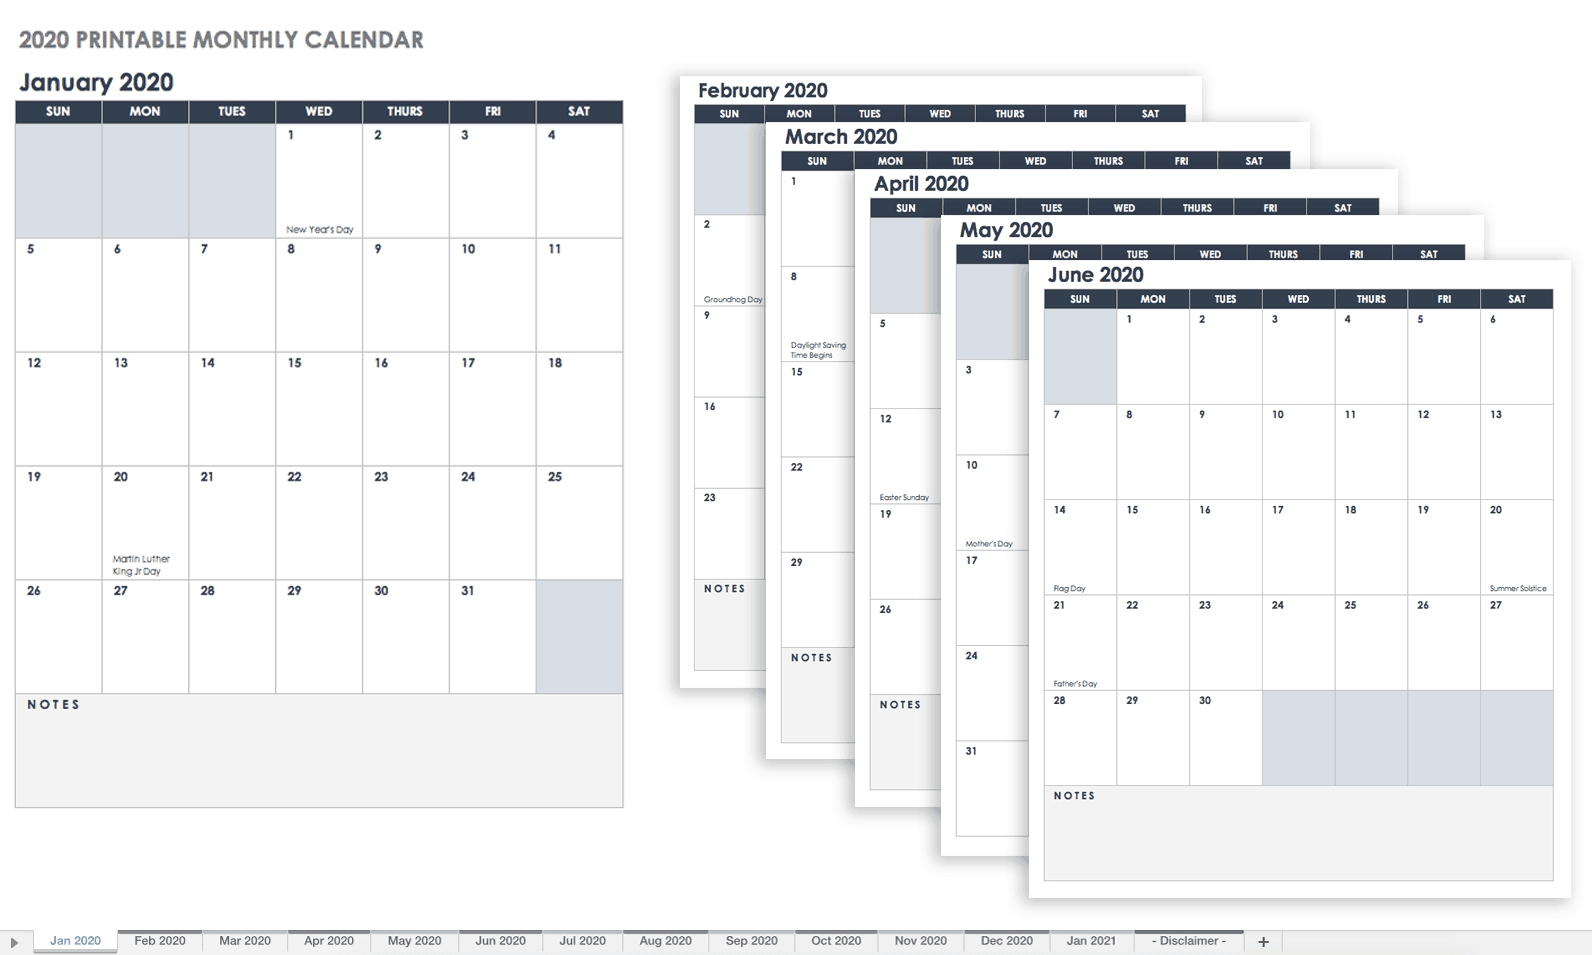 Printable Monthly Calendar Sunday To Saturday No Dates in Calendar Sunday To Saturday